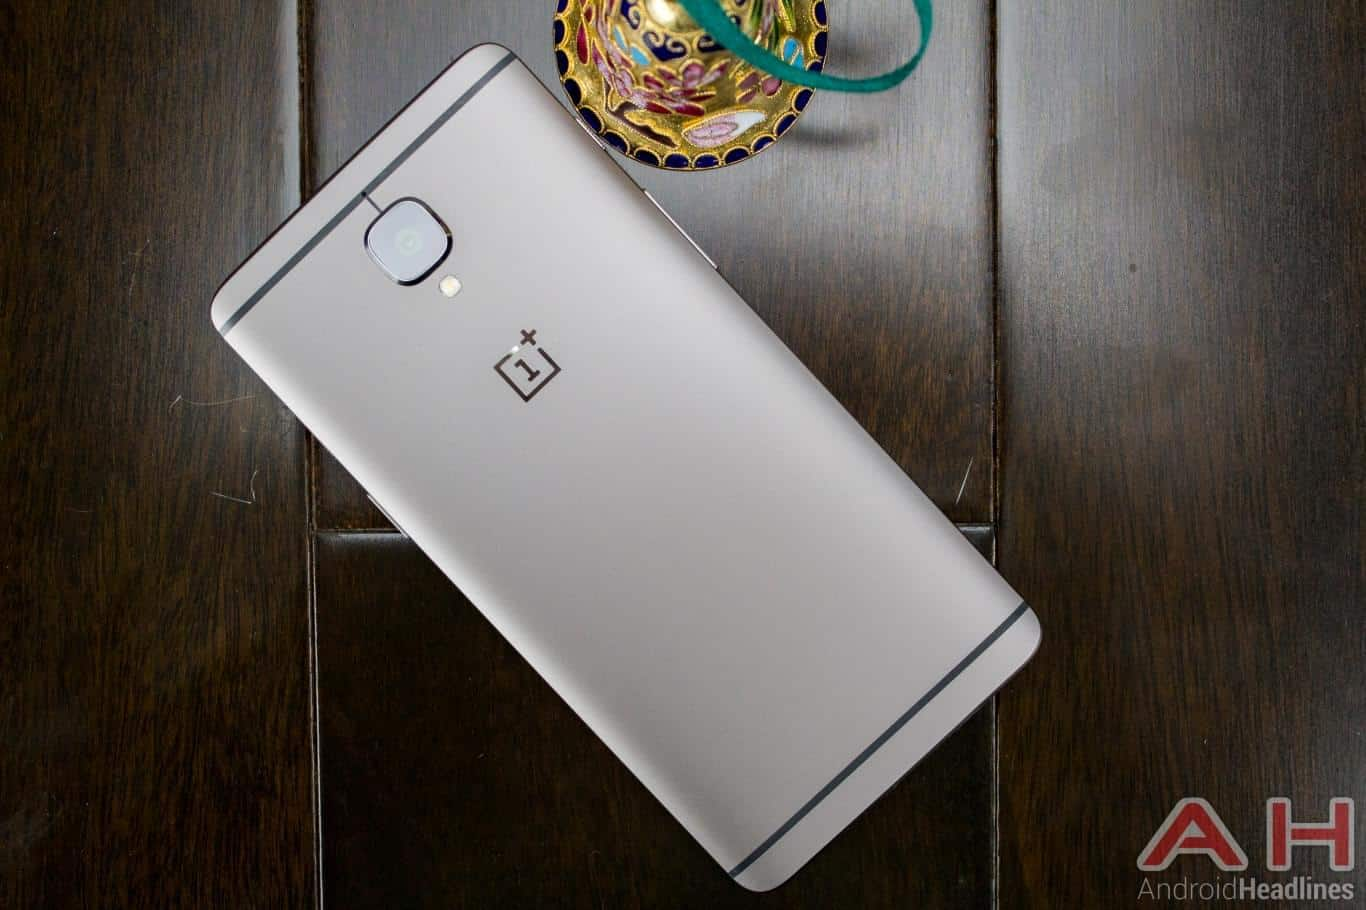 oneplus-3t-ah-ns-01